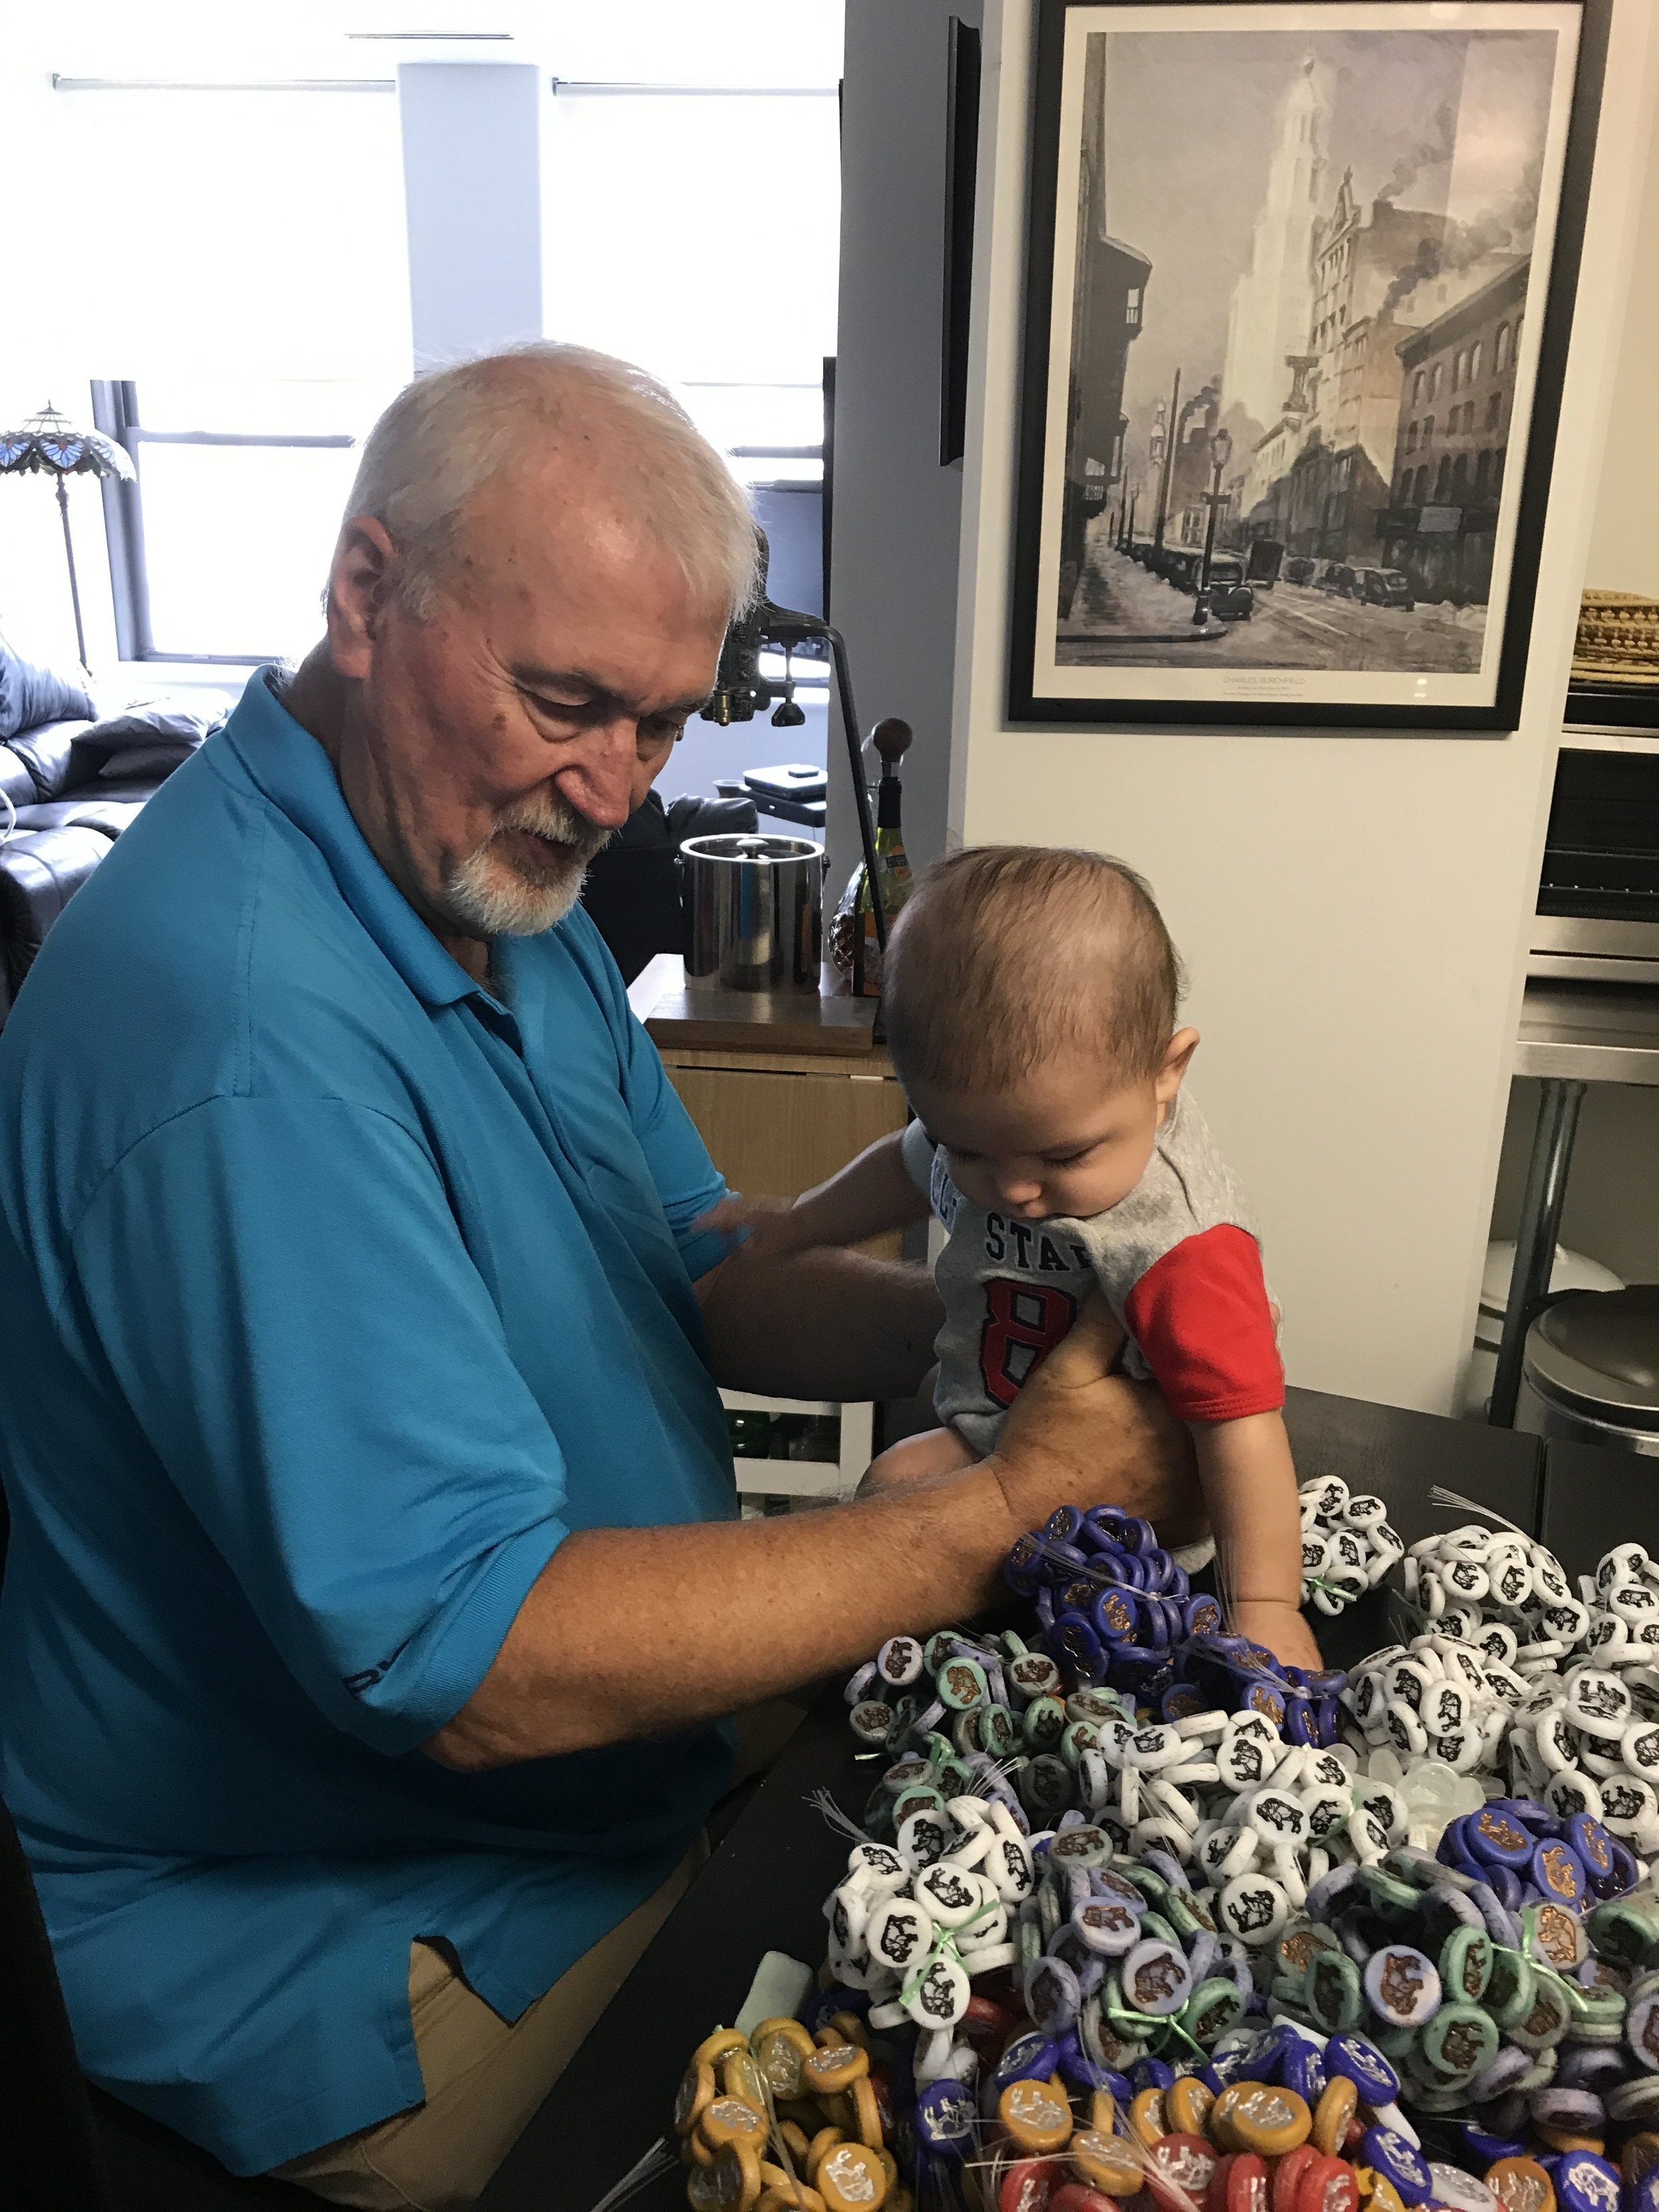 Seven months after sharing cookies and ideas with the Soklova's the first herd arrived in Buffalo - the same day as our grandson Landon's first visit to Buffalo. He immediateely joined his grandfather inspecting the new product — and clearly liked the color choices.